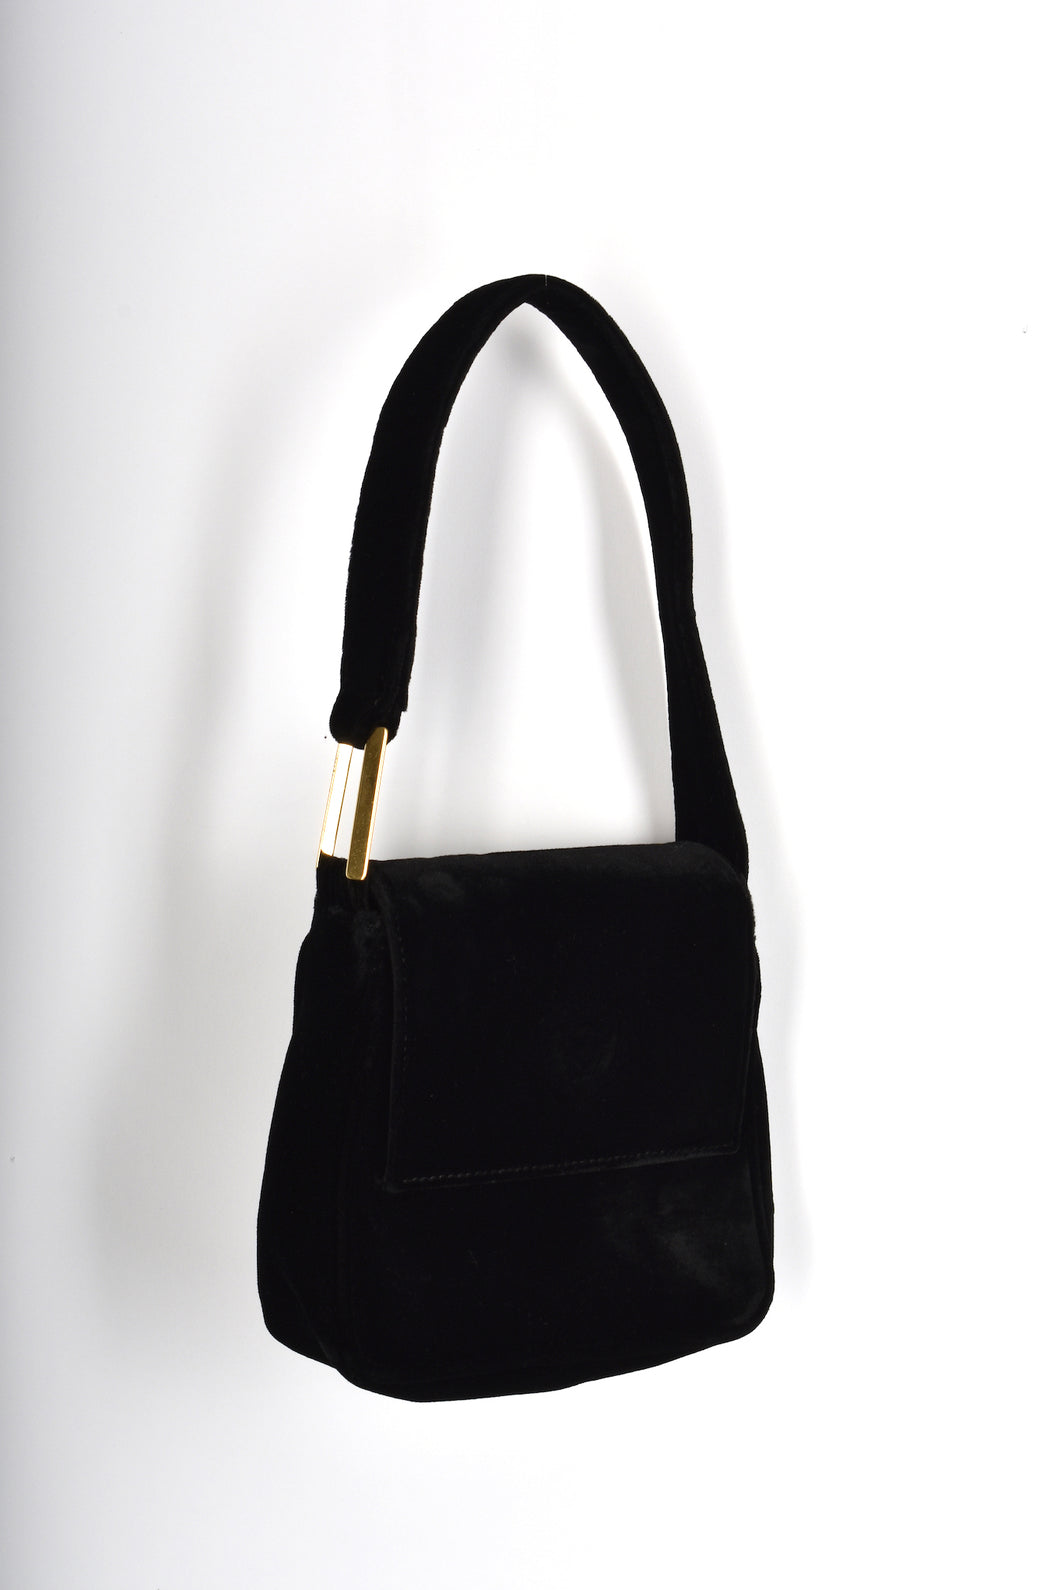 GIANNI VERSACE 80's black velvet bag